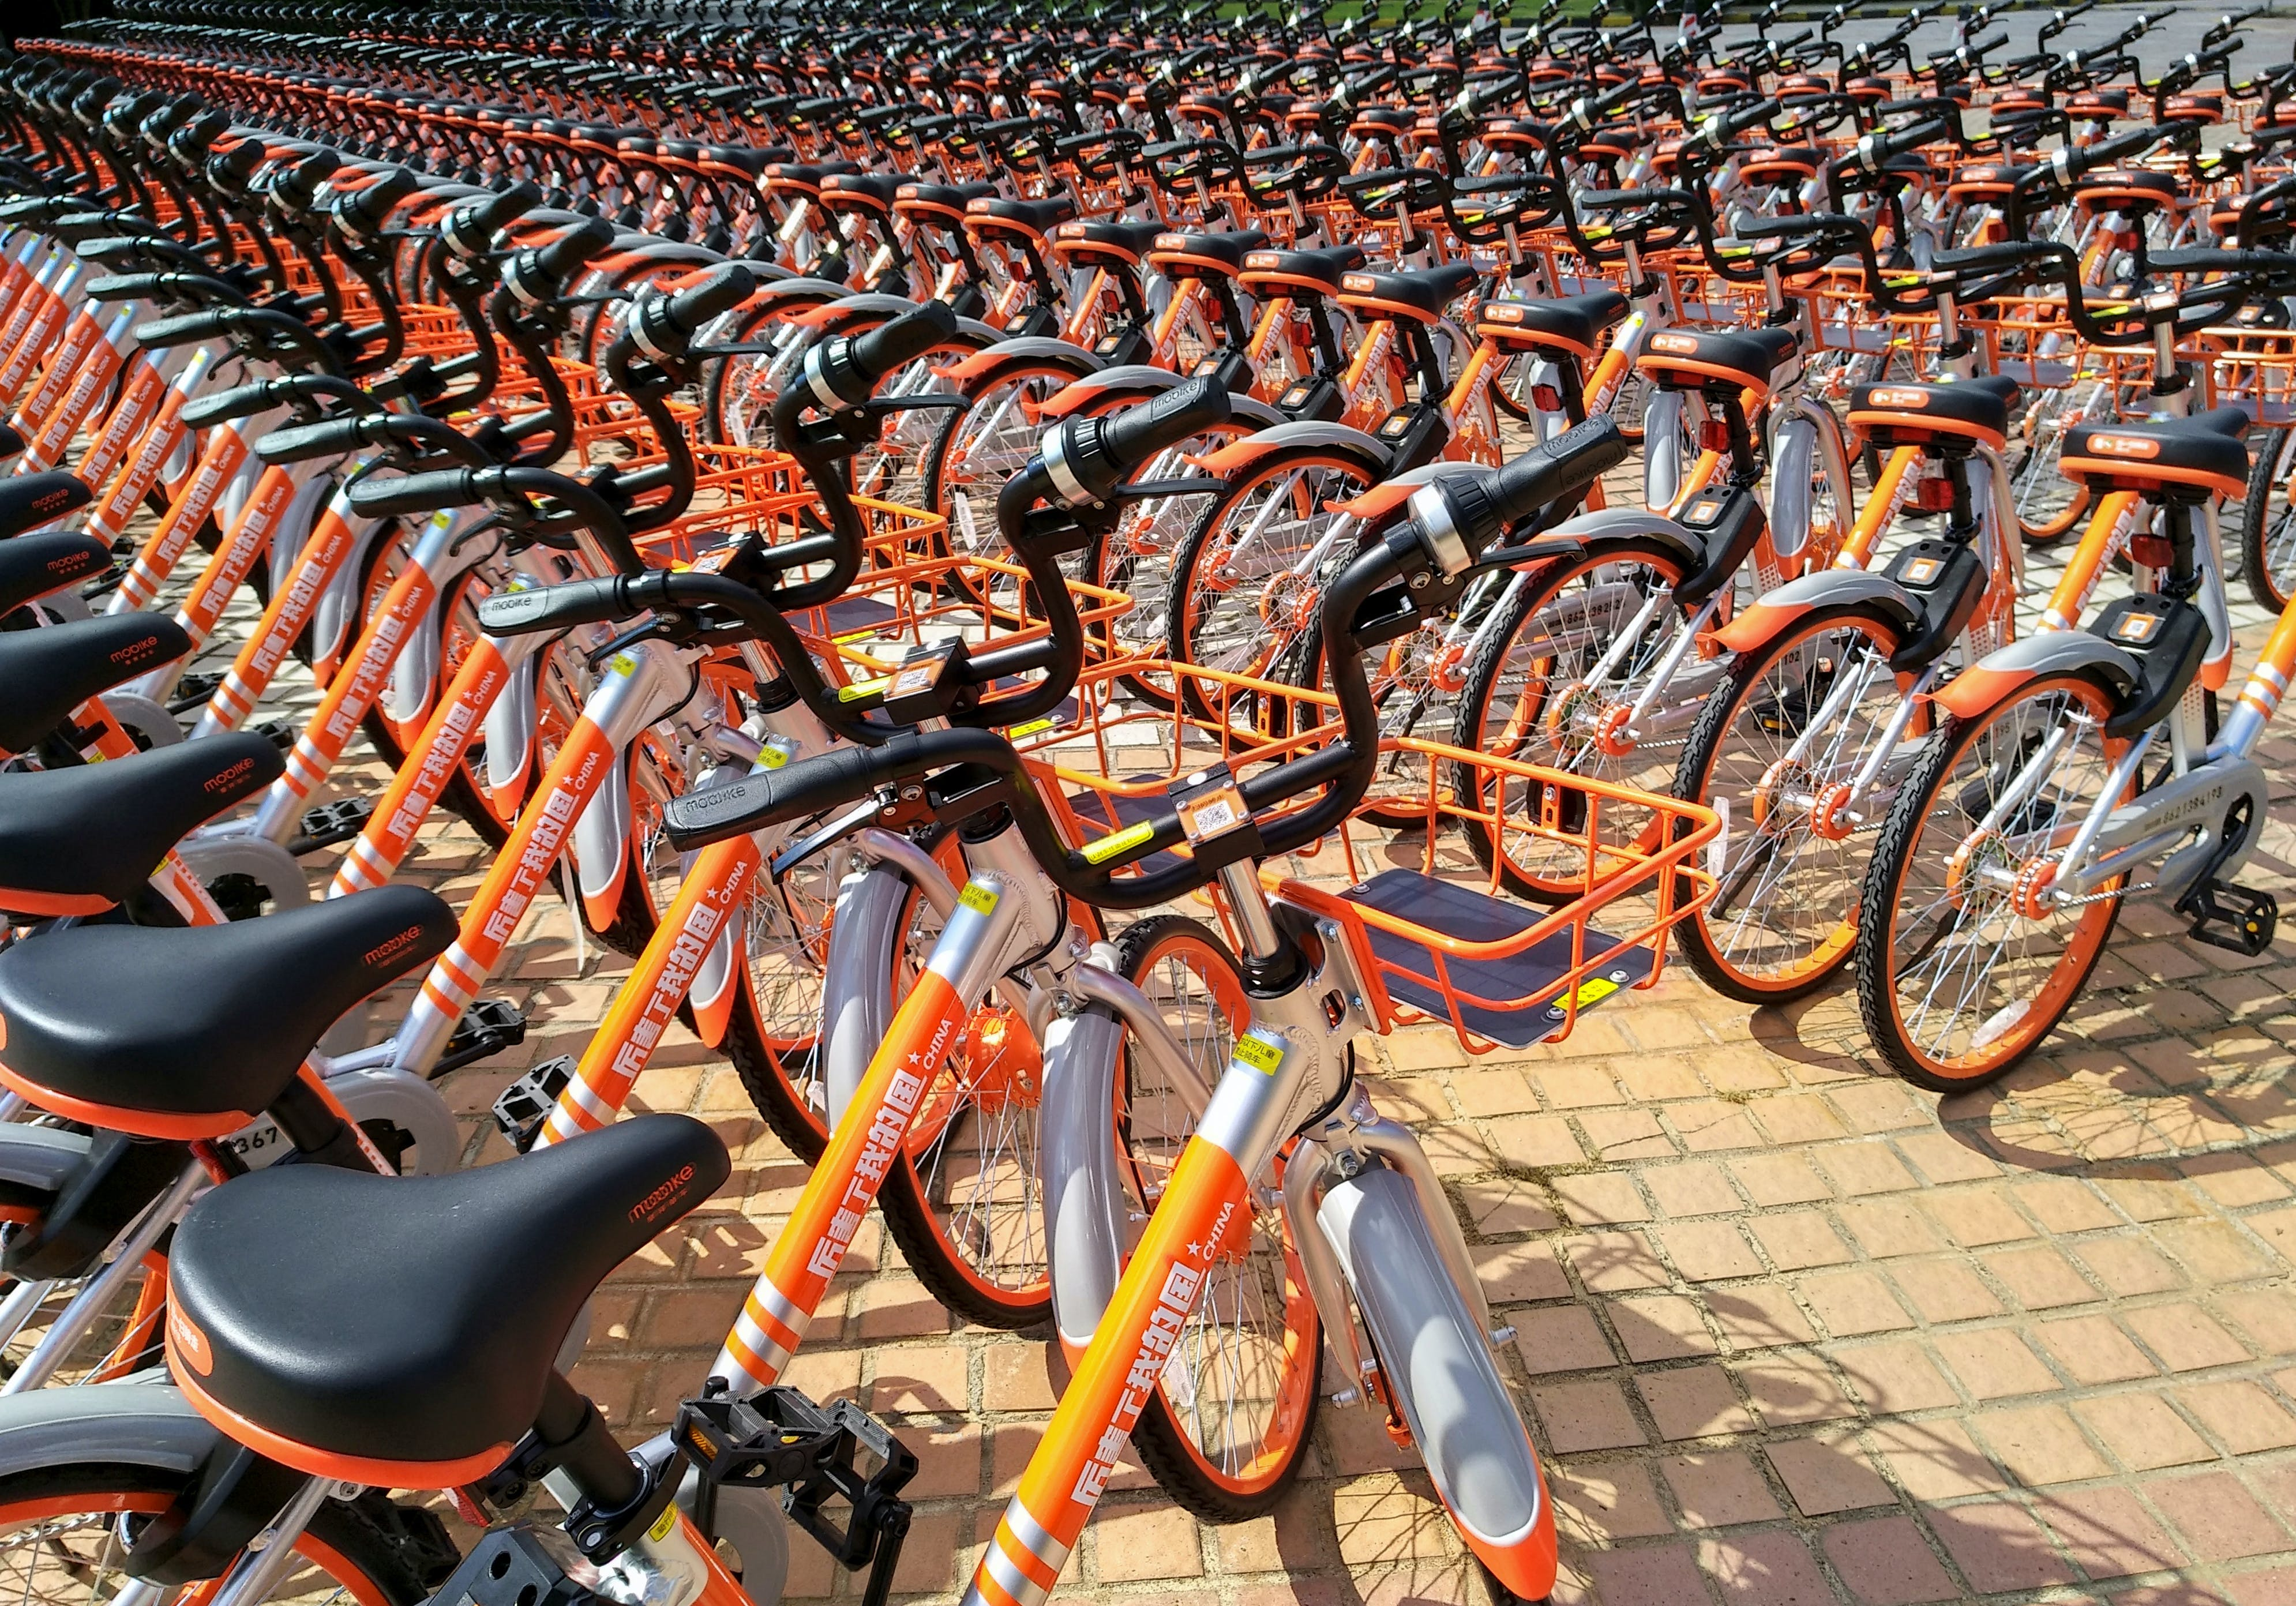 Mobike's shared bikes are lined up in Shenzhen, Guangdong province, China August 19, 2017. REUTERS/Stringer ATTENTION EDITORS - THIS IMAGE WAS PROVIDED BY A THIRD PARTY. CHINA OUT. NO COMMERCIAL OR EDITORIAL SALES IN CHINA. - RC135F7E17D0